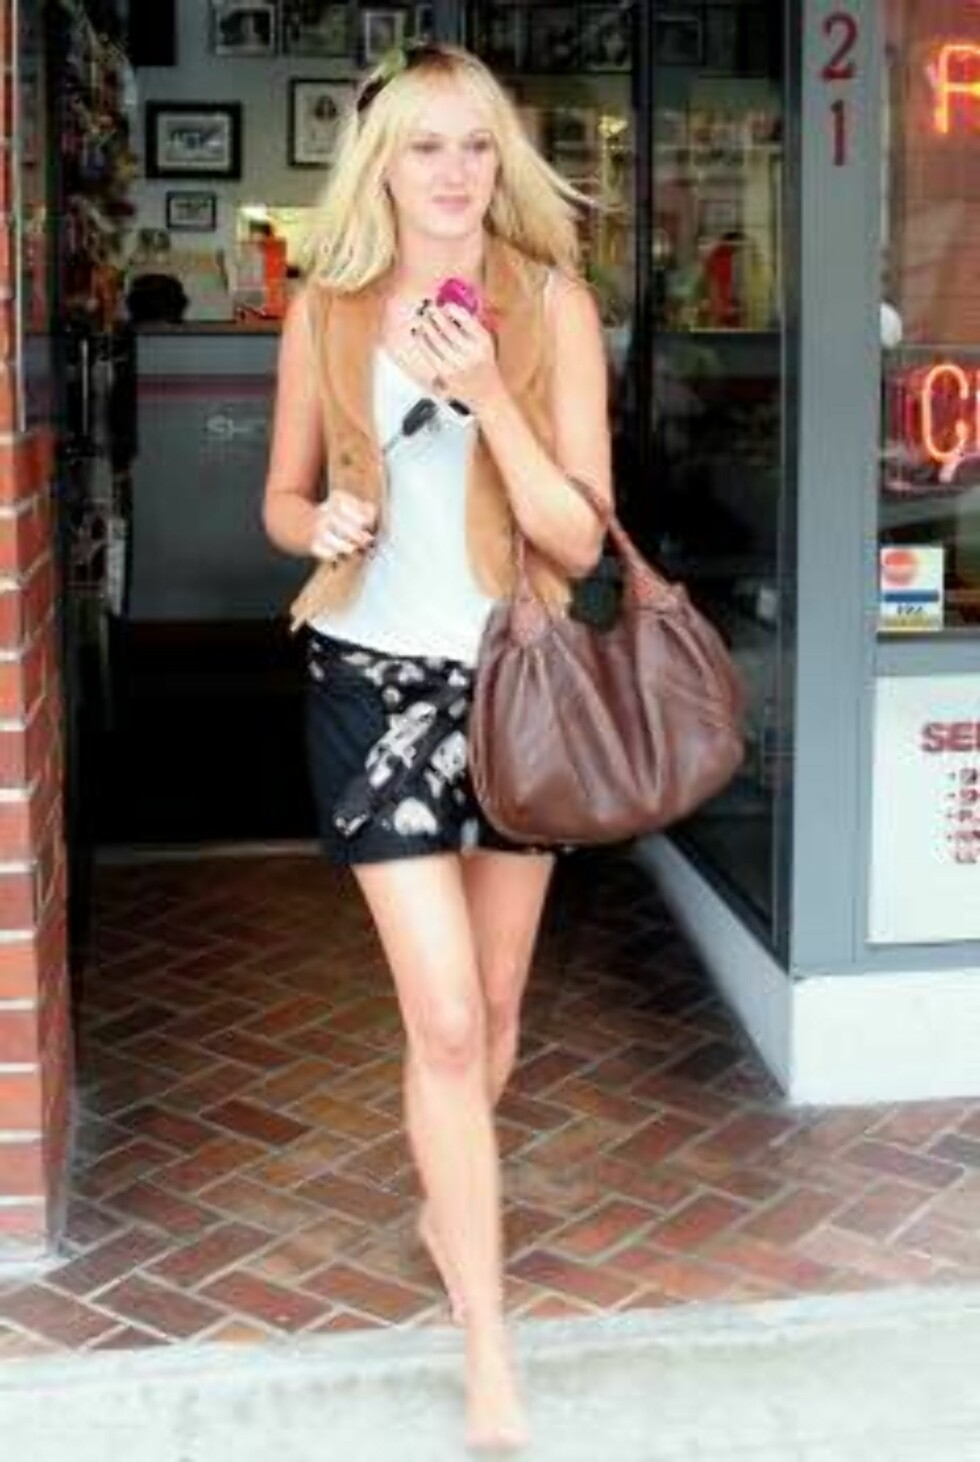 EXCLUSIVE. A barefoot Kimberly Stewart enjoys her shopping in Beverly Hills, CA, USA on May 19, 2006.   Photo: VIPIix/ABACAPRESS Code:4001/98131  COPYRIGHT STELLA PICTURES Foto: Stella Pictures